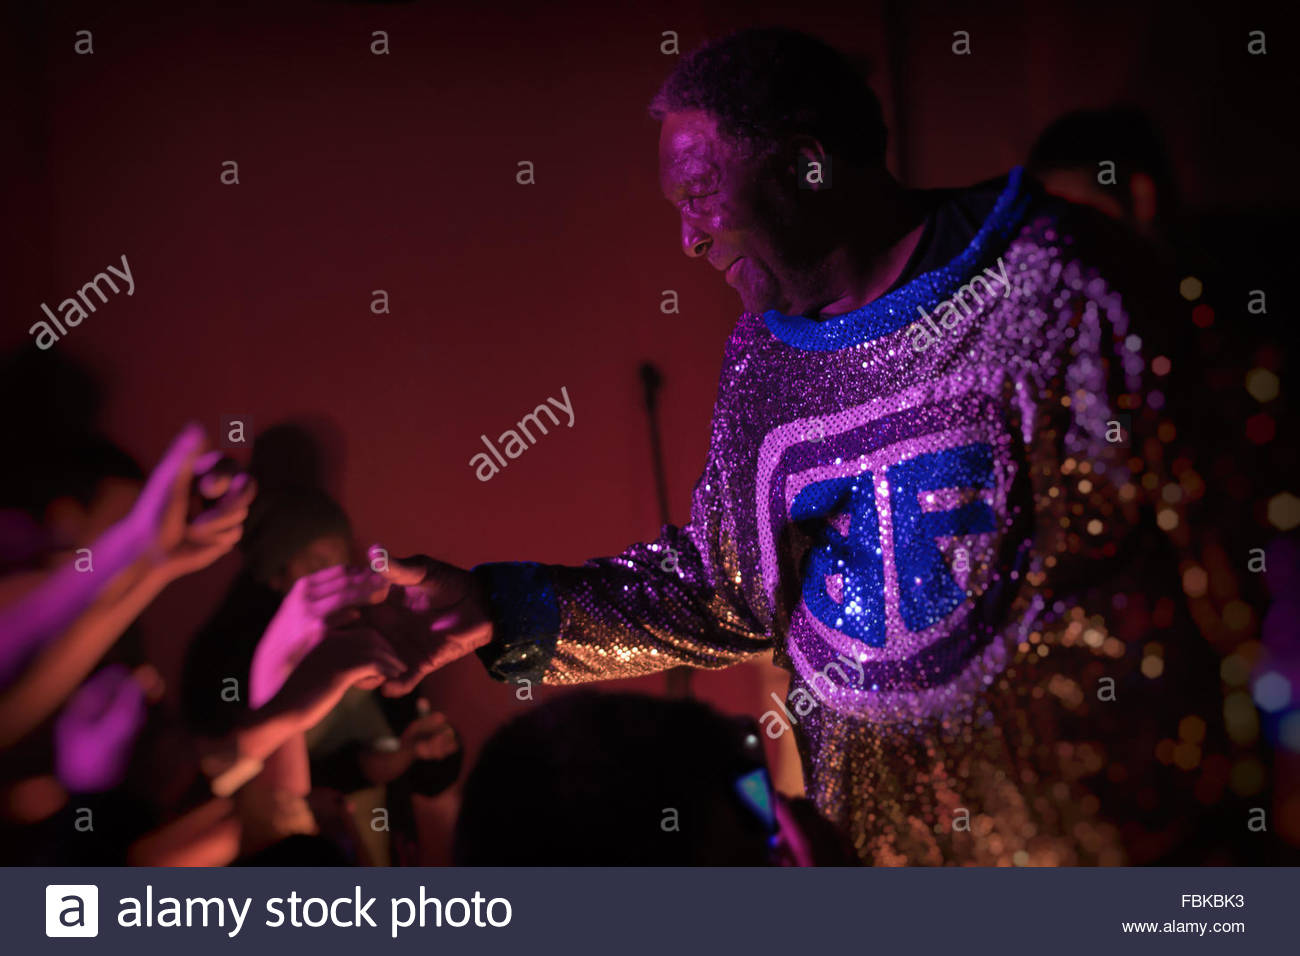 Clarence Reid. Dirty singer, rapper & pioneer know as Blowfly at the Smiling Buddha in Toronto, September 19, 2014. Stock Photo